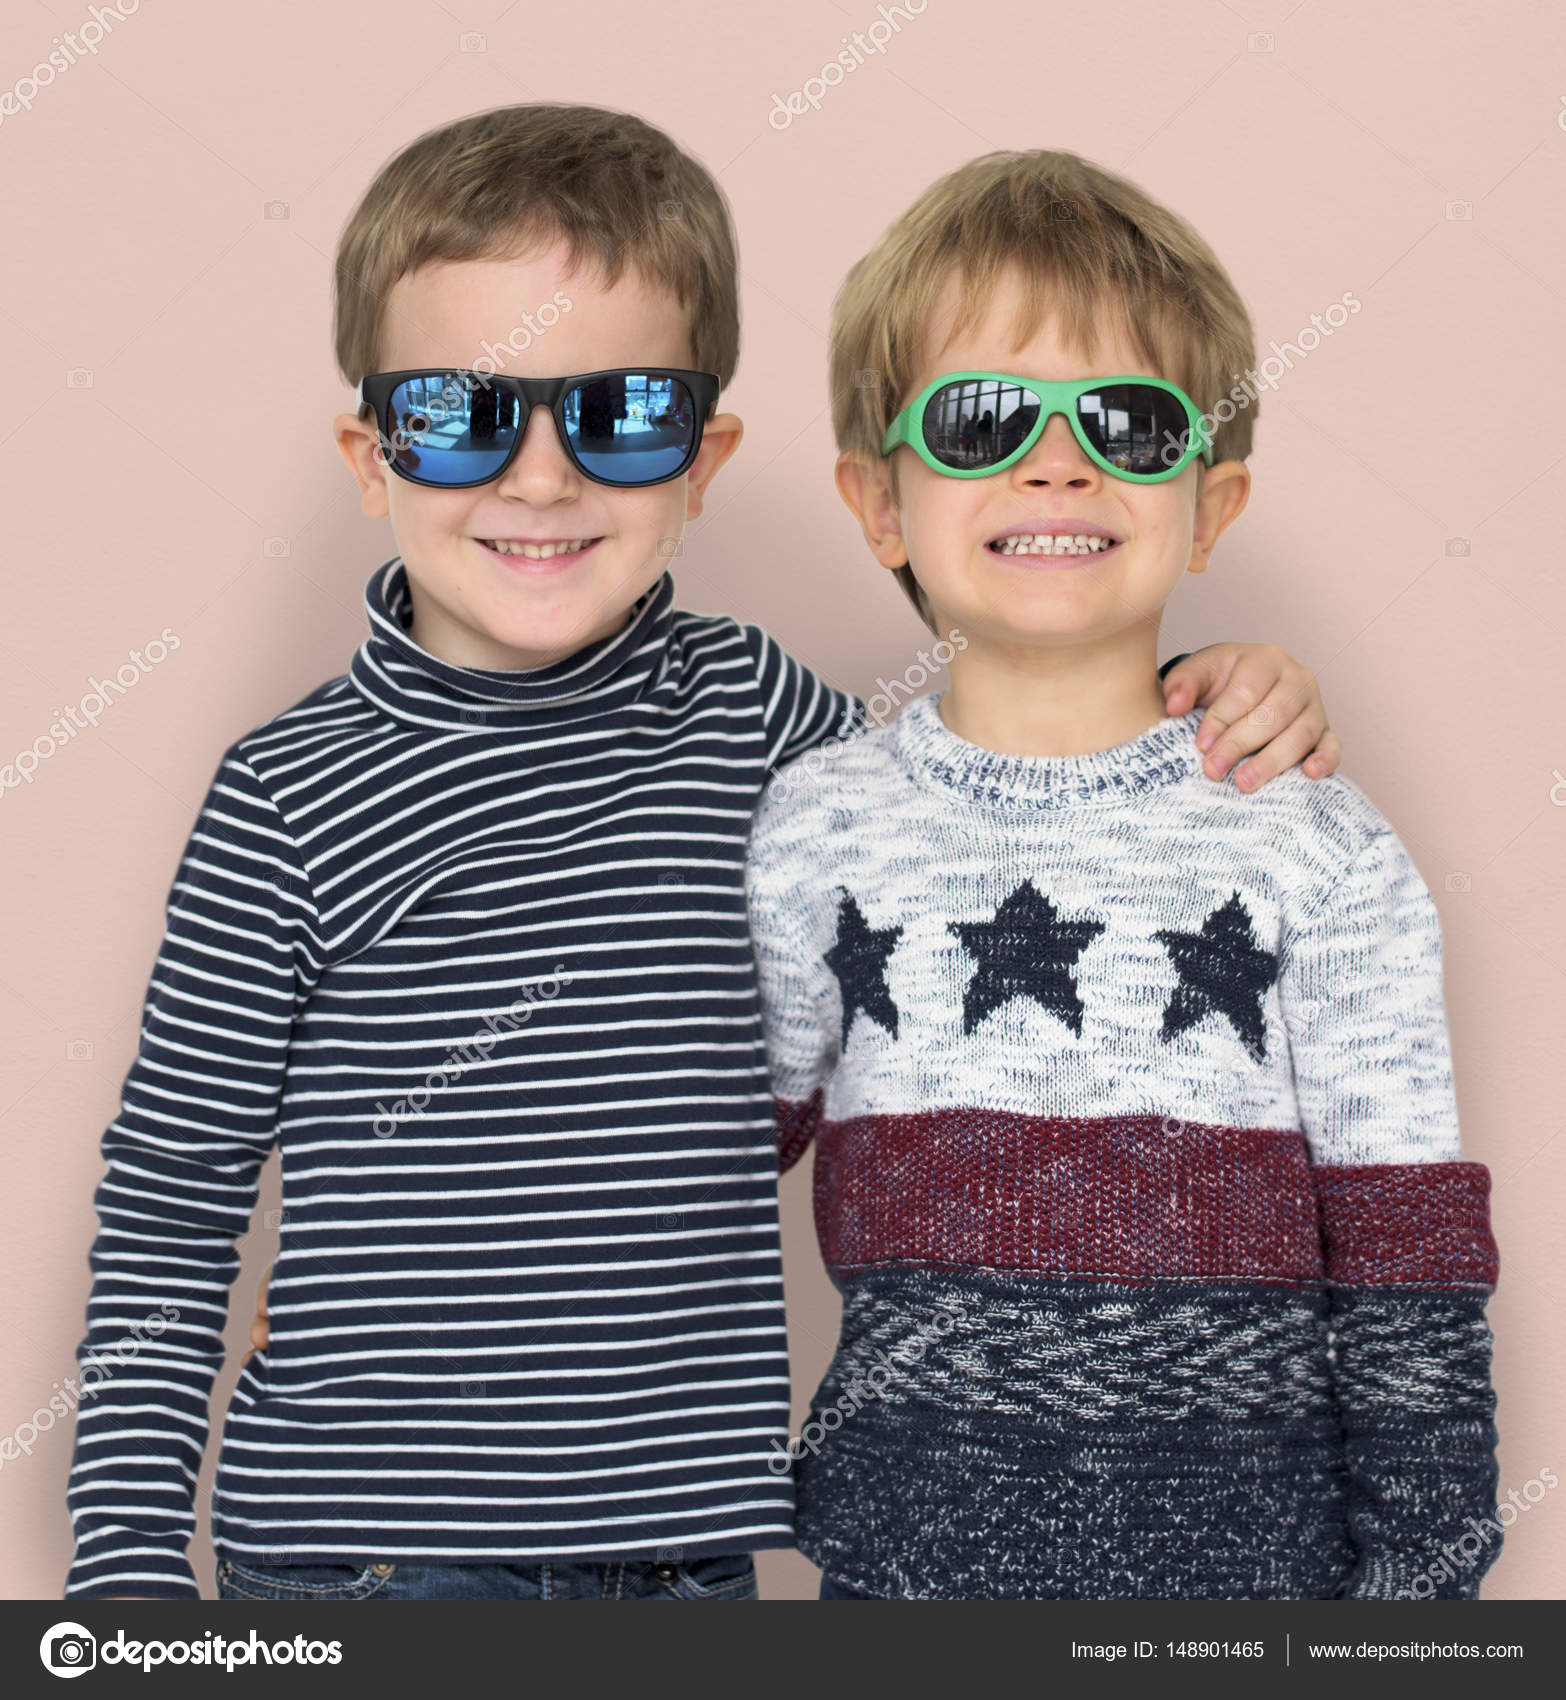 1727a4f455 stylish little boys wearing sunglasses — Stock Photo © Rawpixel ...